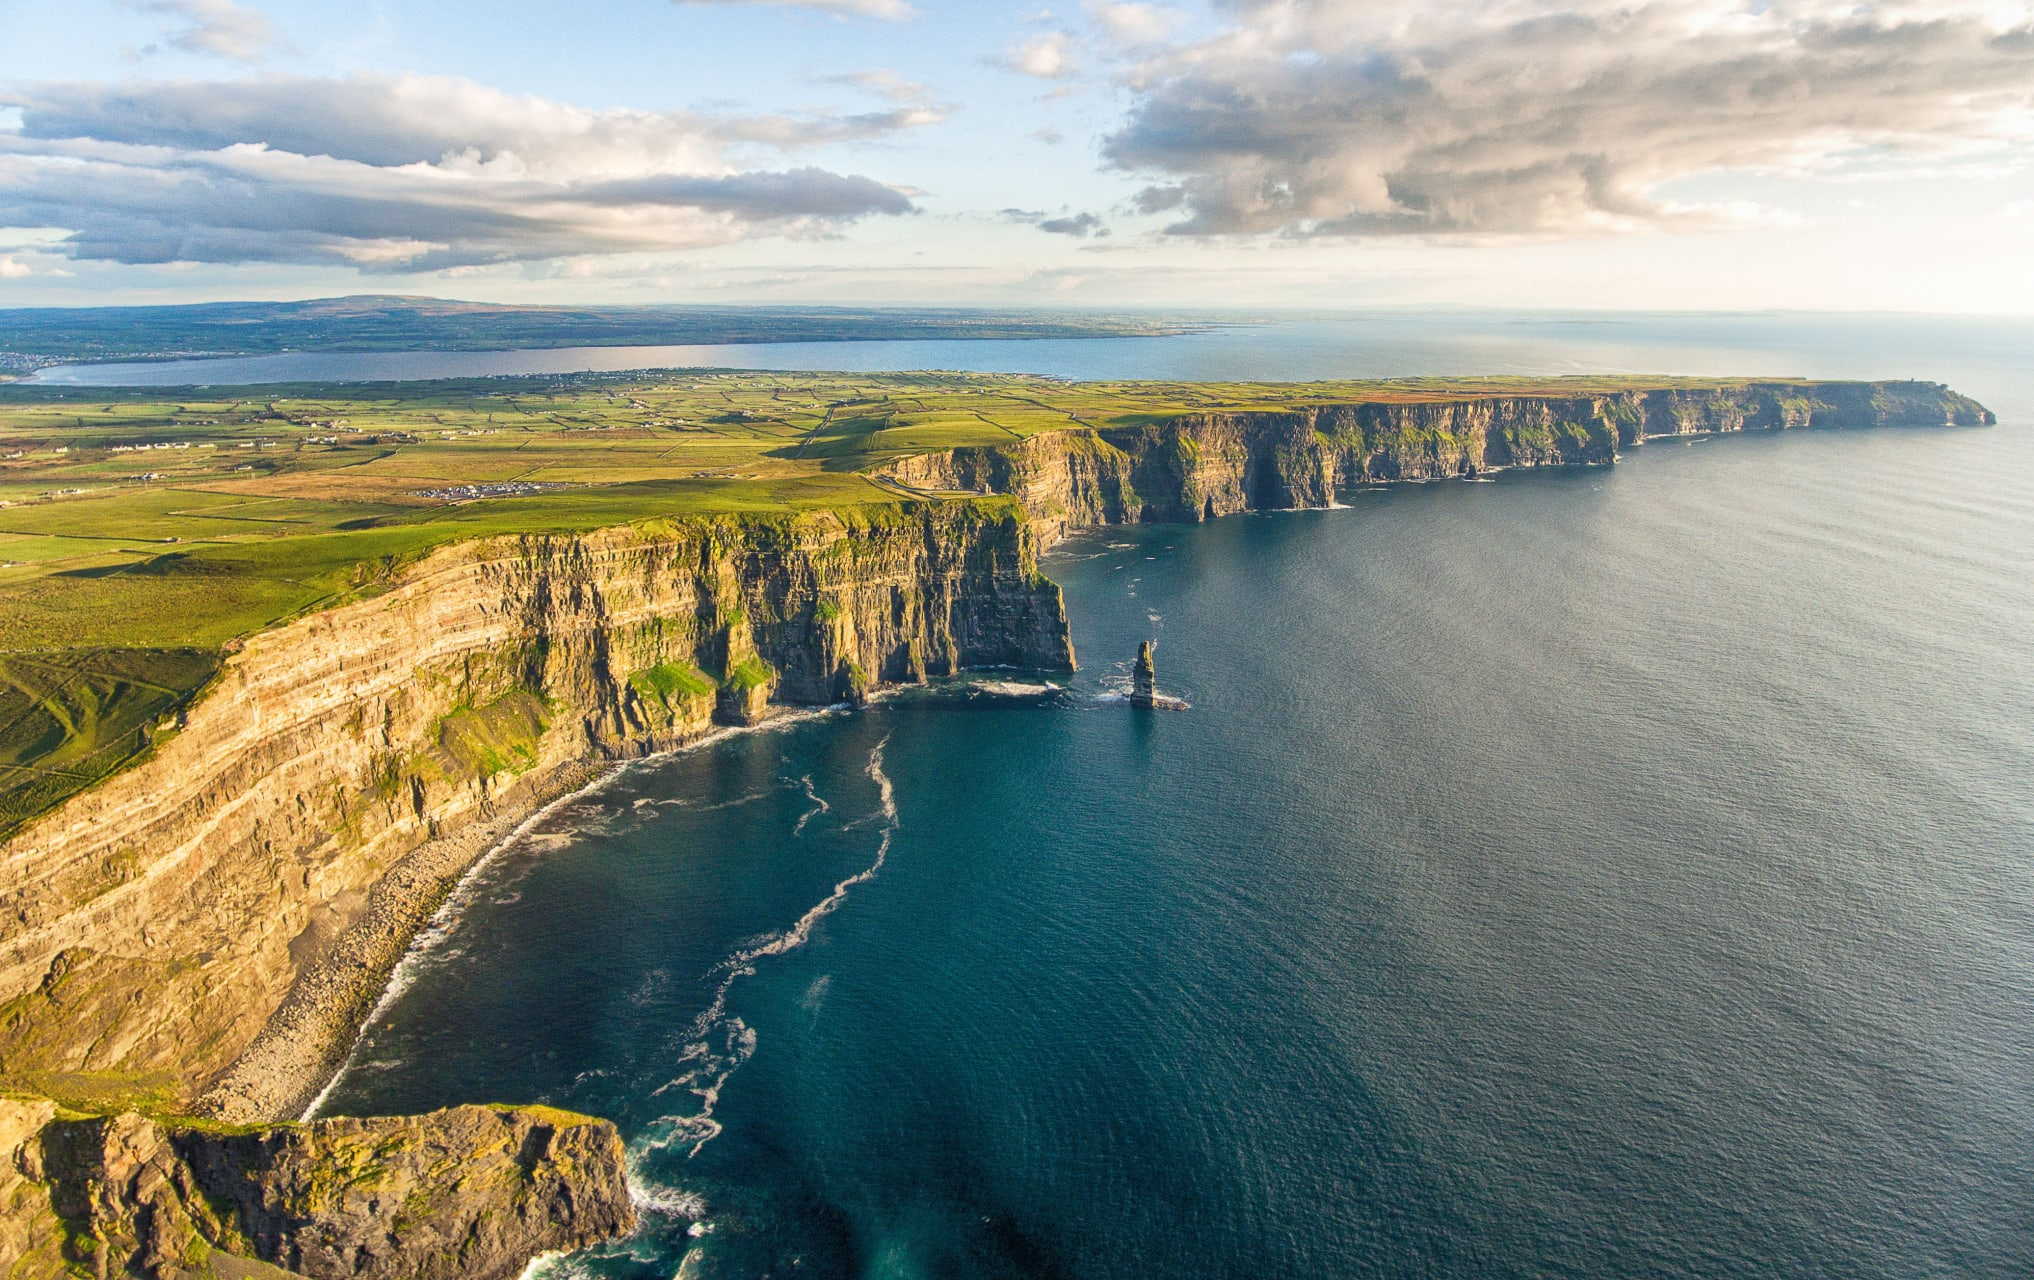 West of Ireland - Cliffs of Moher, County Clare